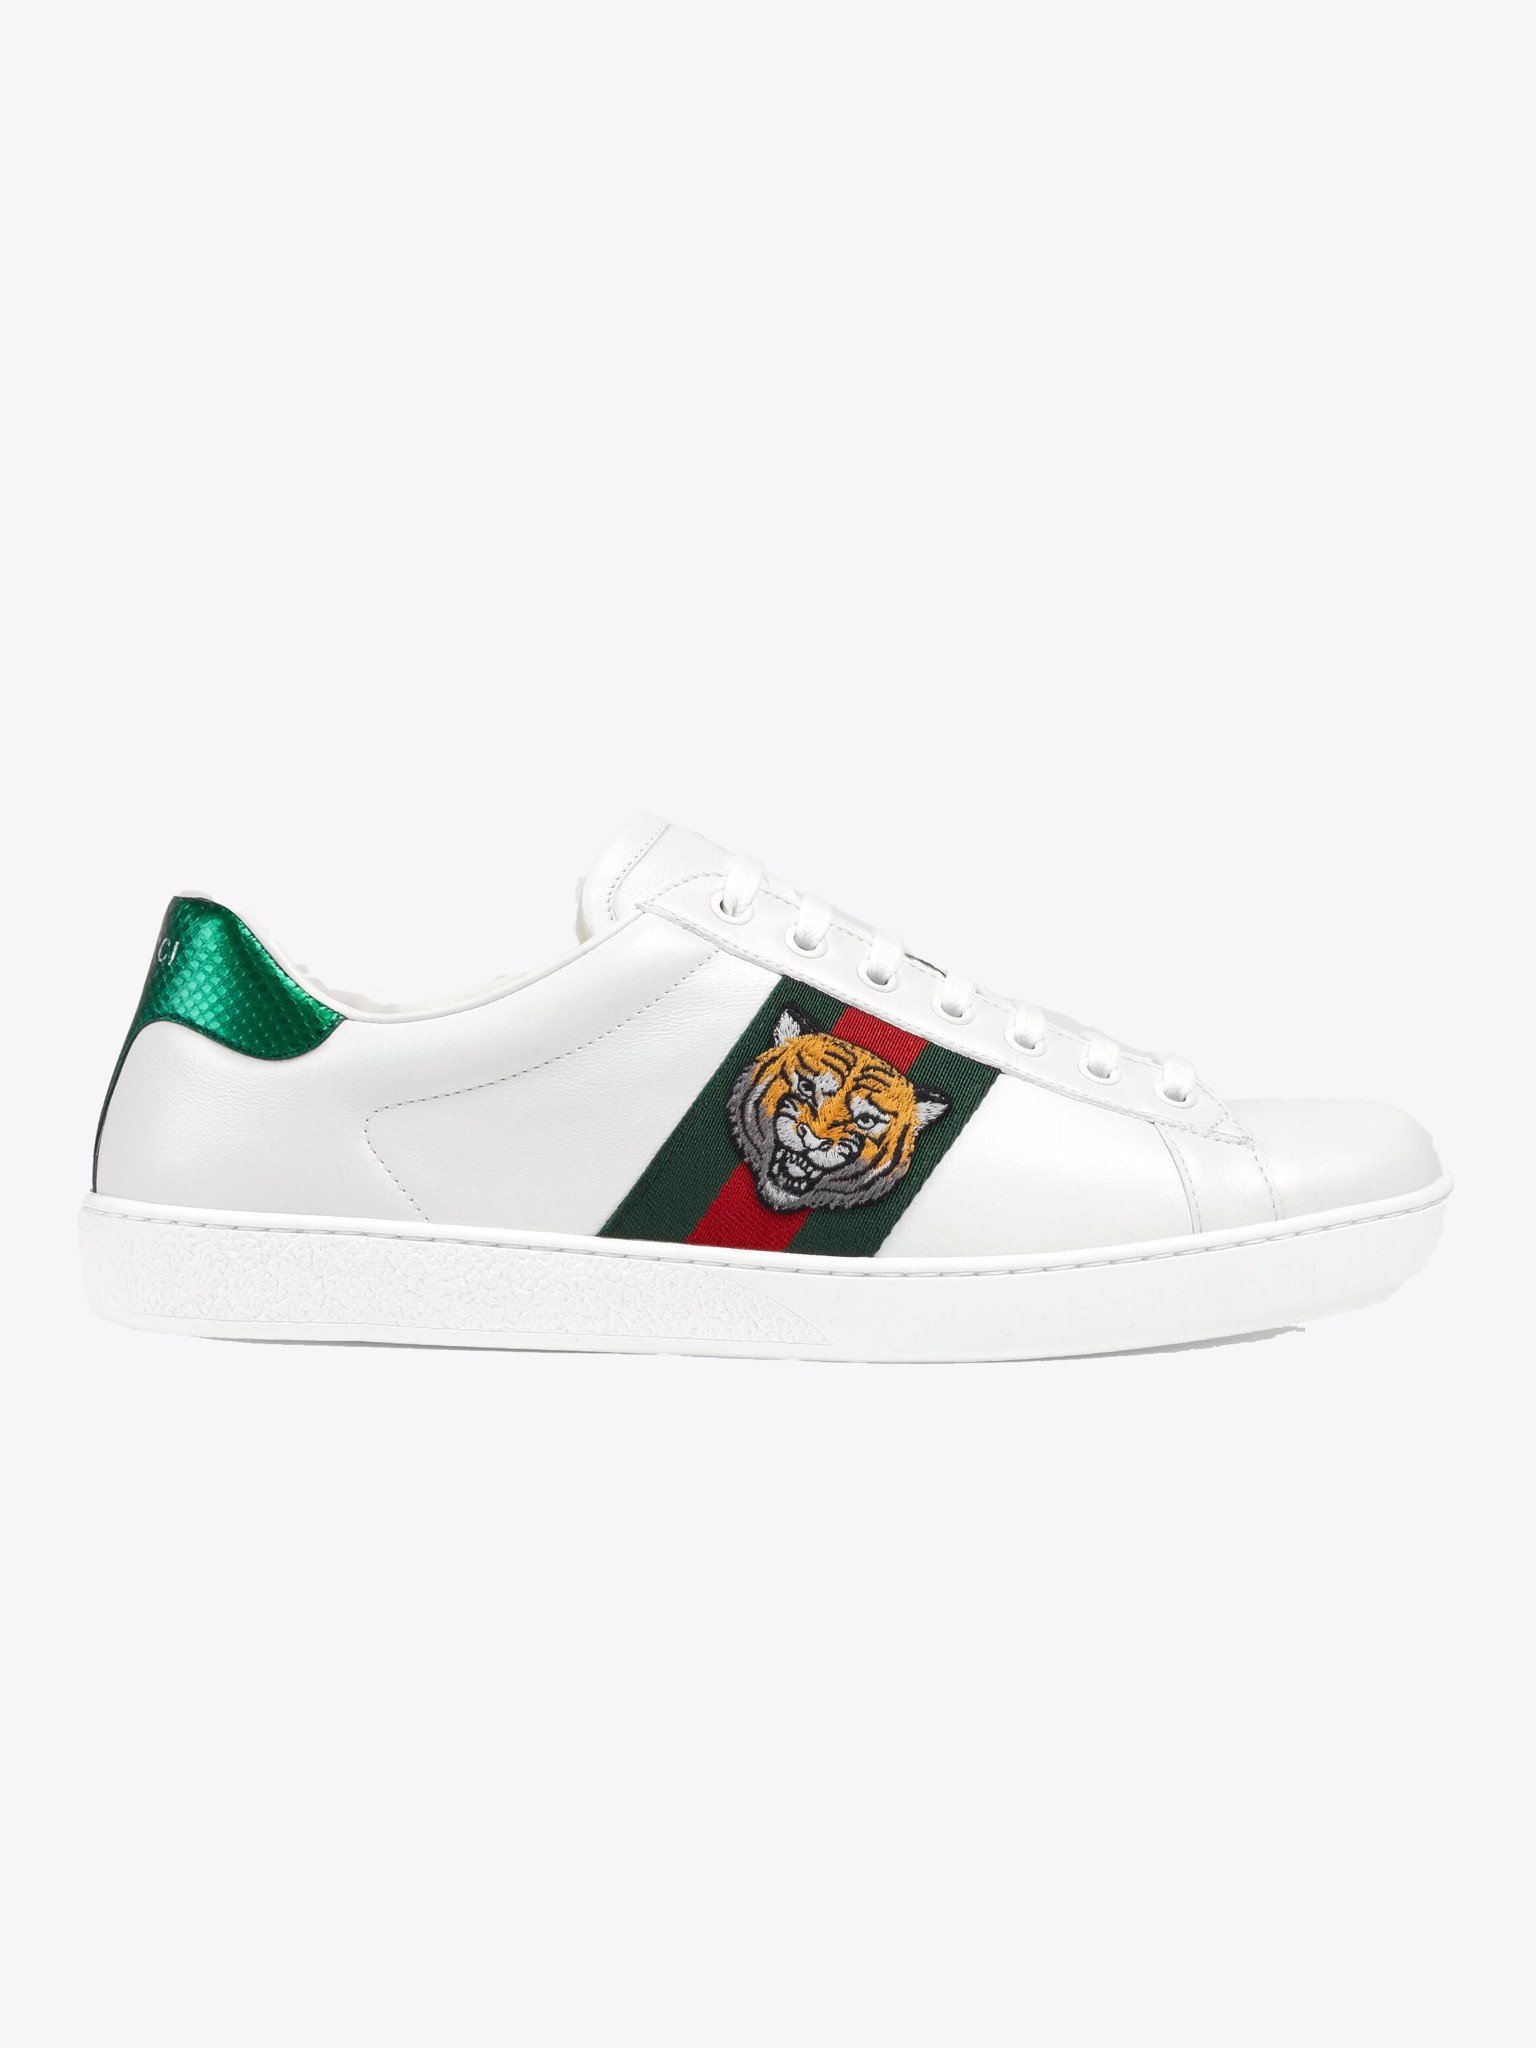 Gucci Ace Tiger